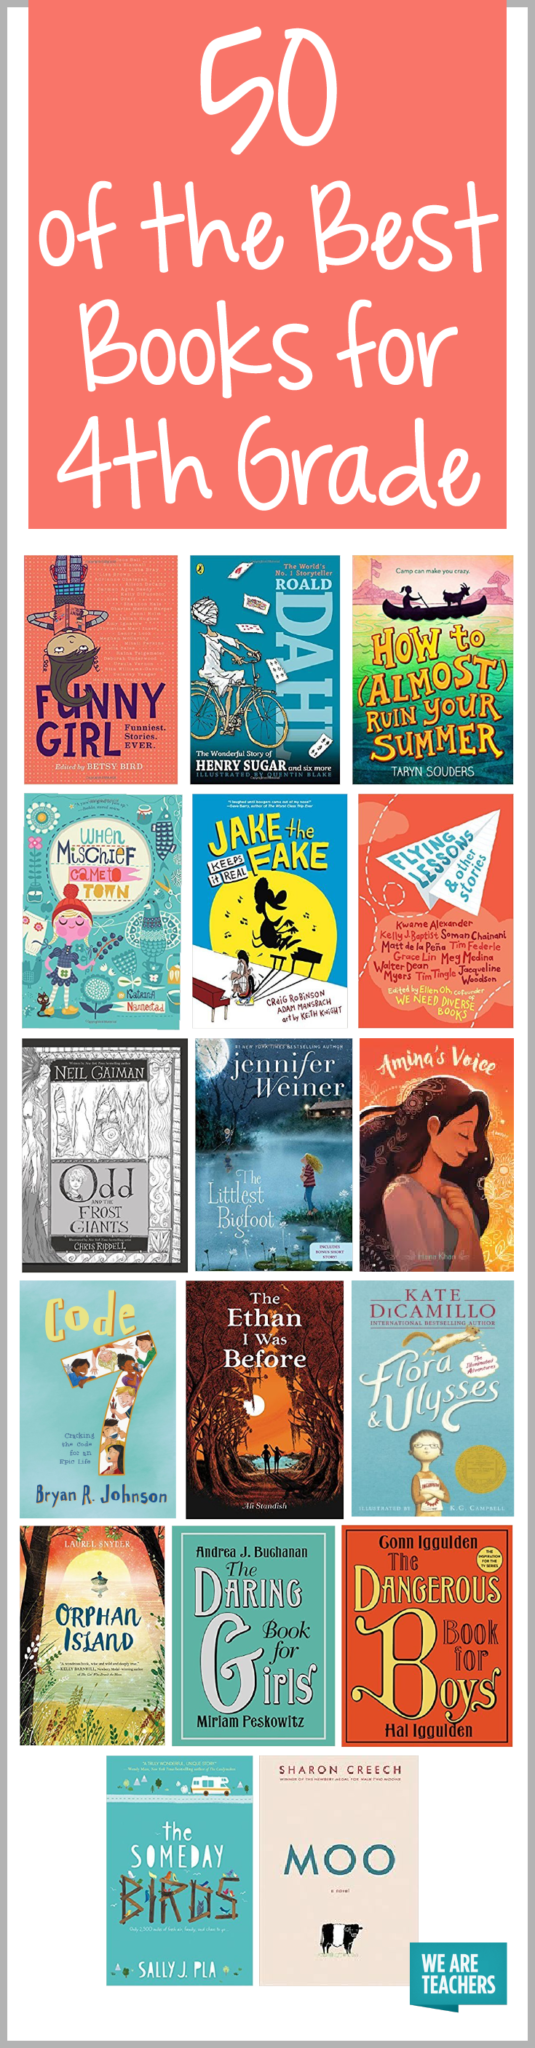 Best 4th Grade Books For The Classroom Weareteachers